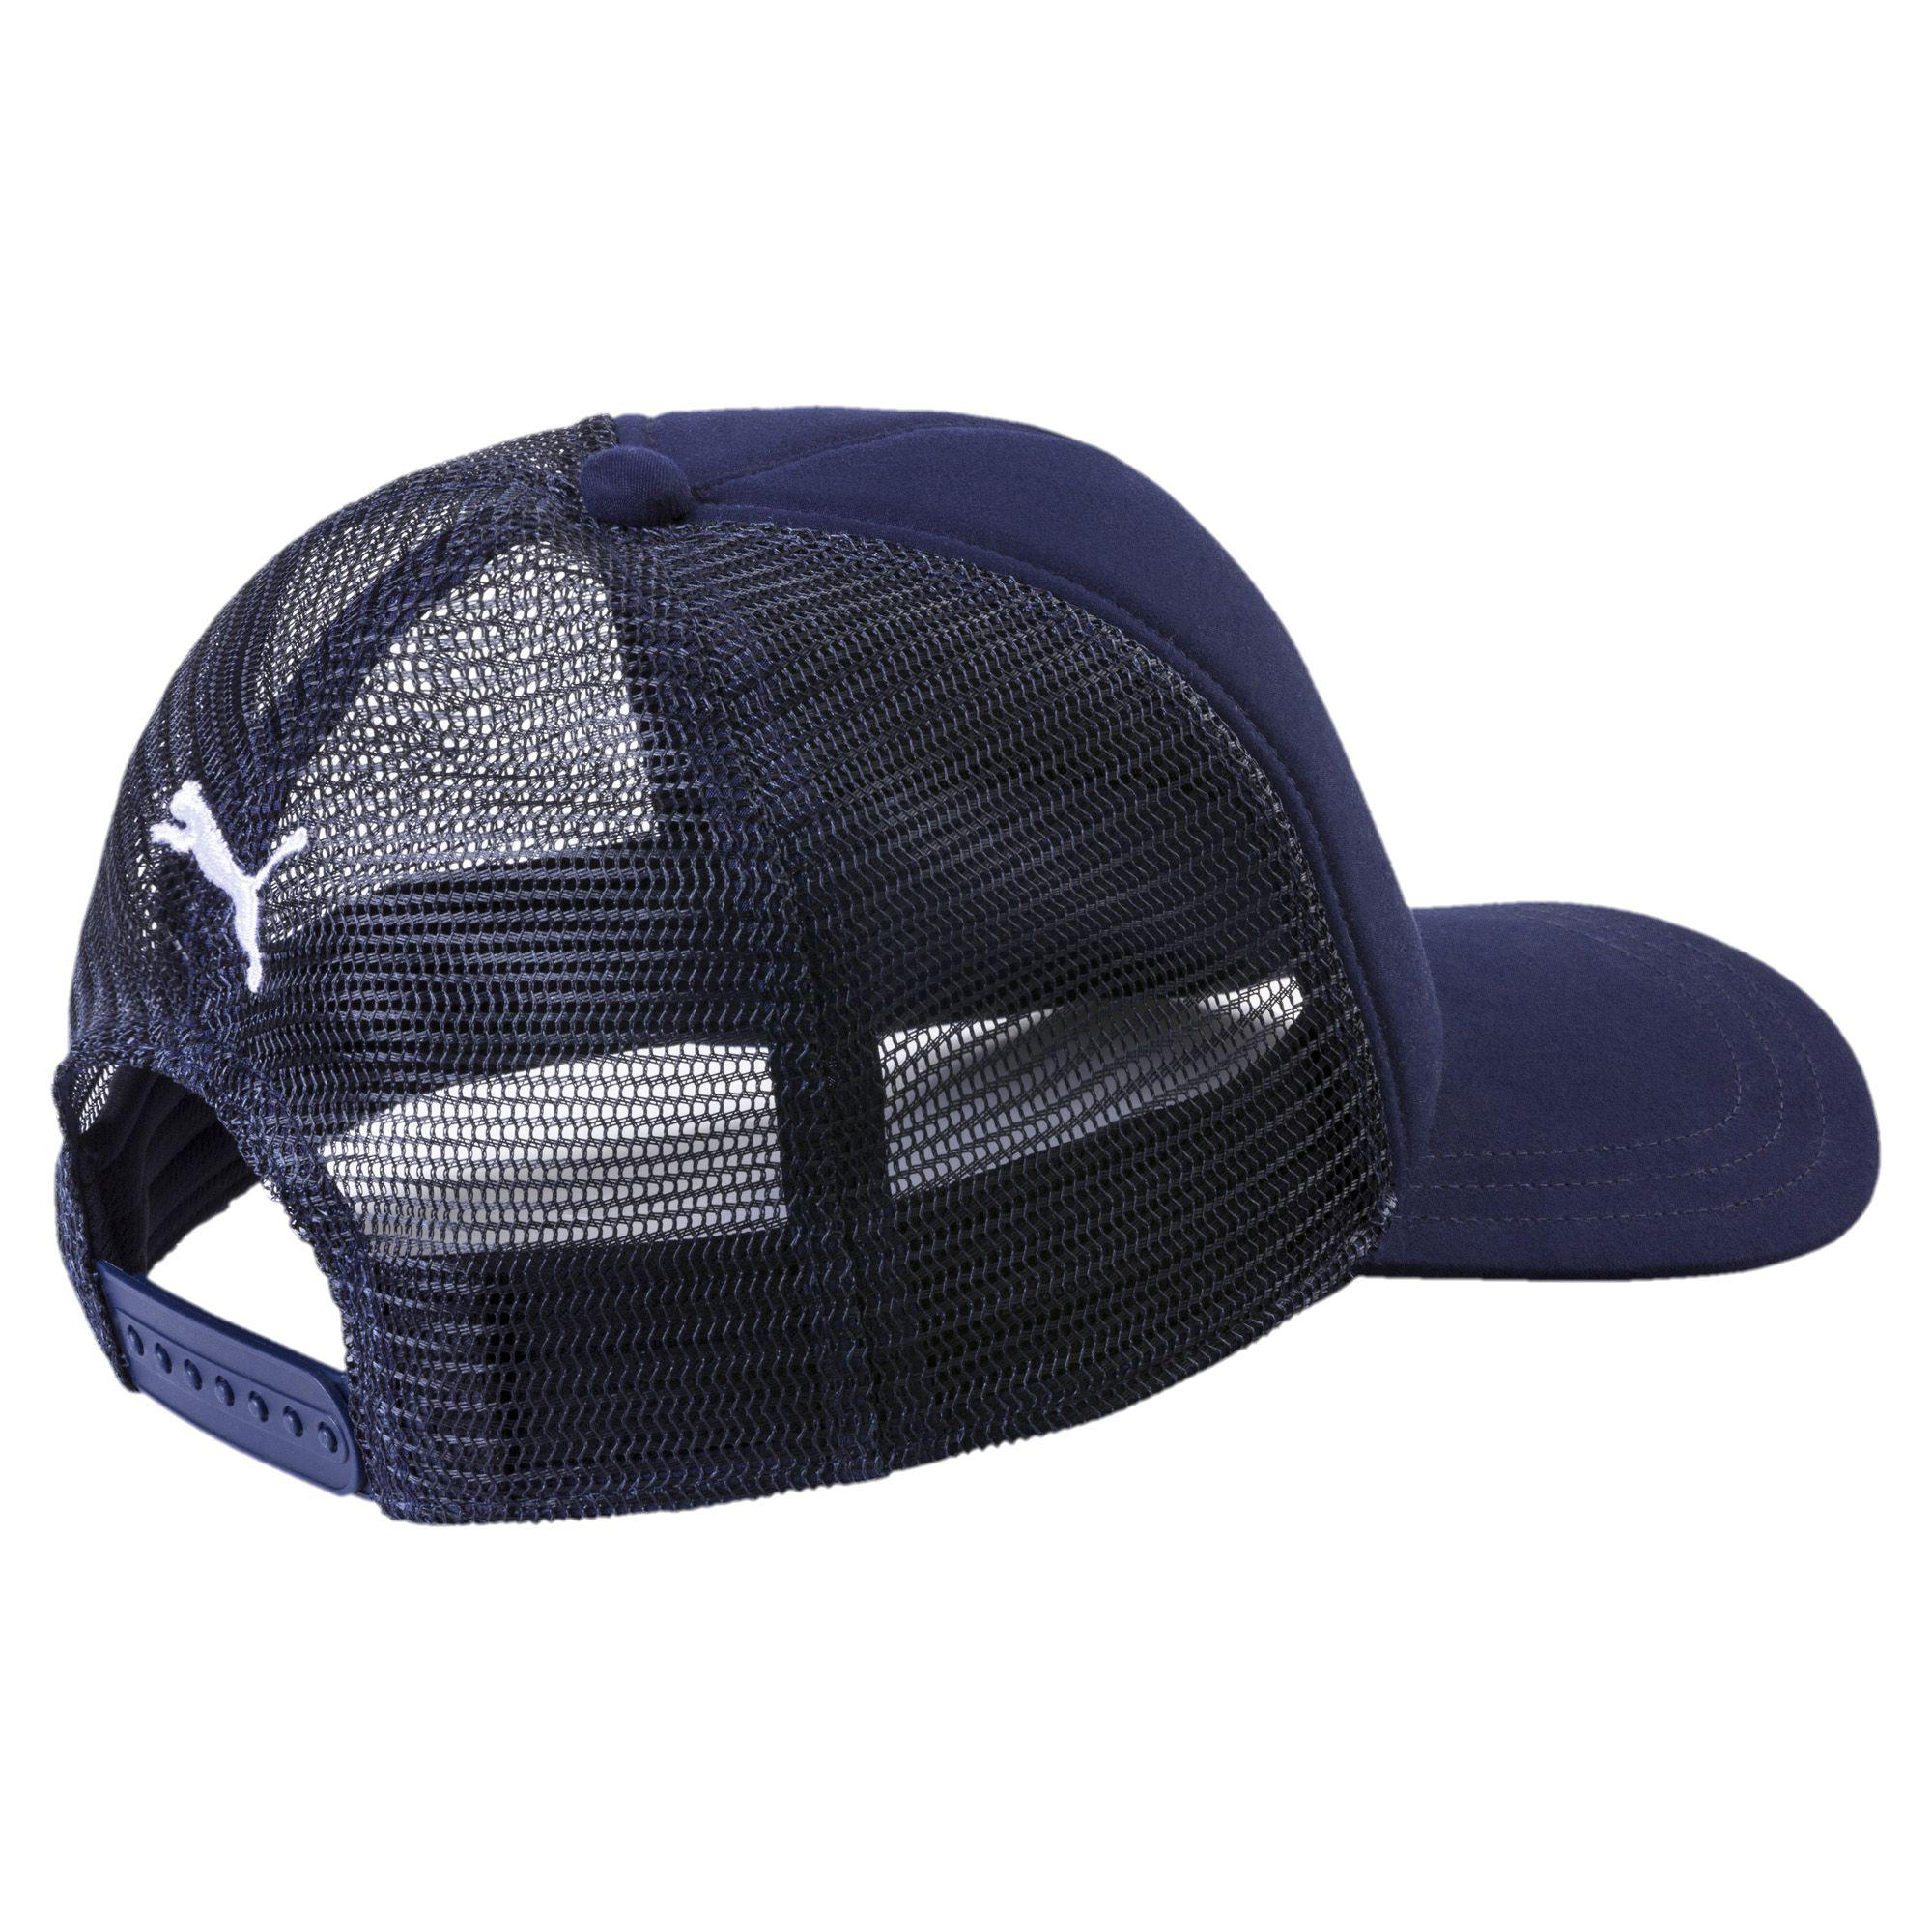 2613dff663c ... discount lyst puma style trucker hat in blue for men b1bdc 25ab8